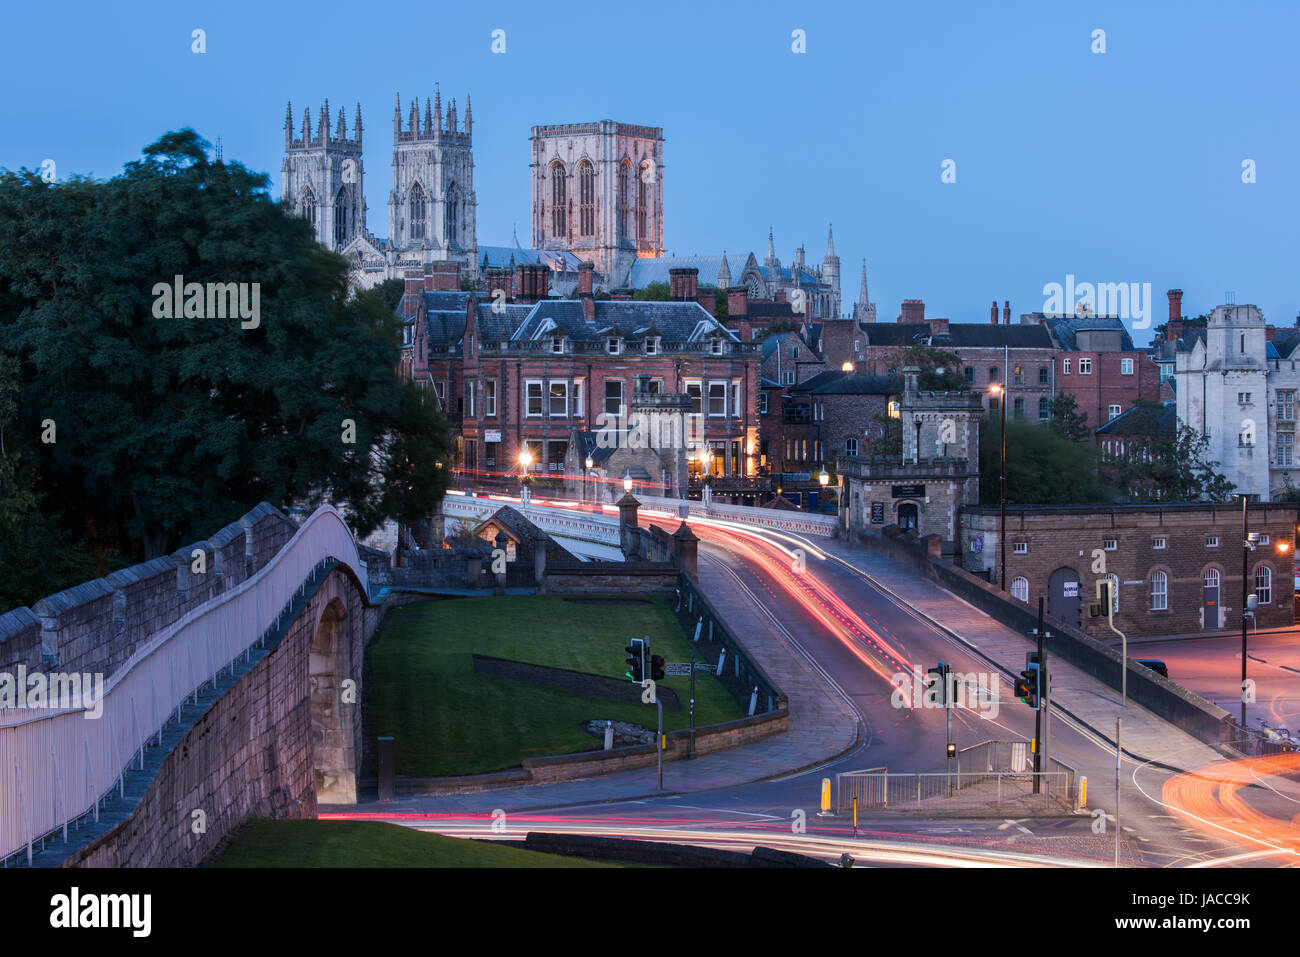 City walls, road over Lendal Bridge & 3 iconic towers of Minster set against dark evening sky, glow of street - Stock Image